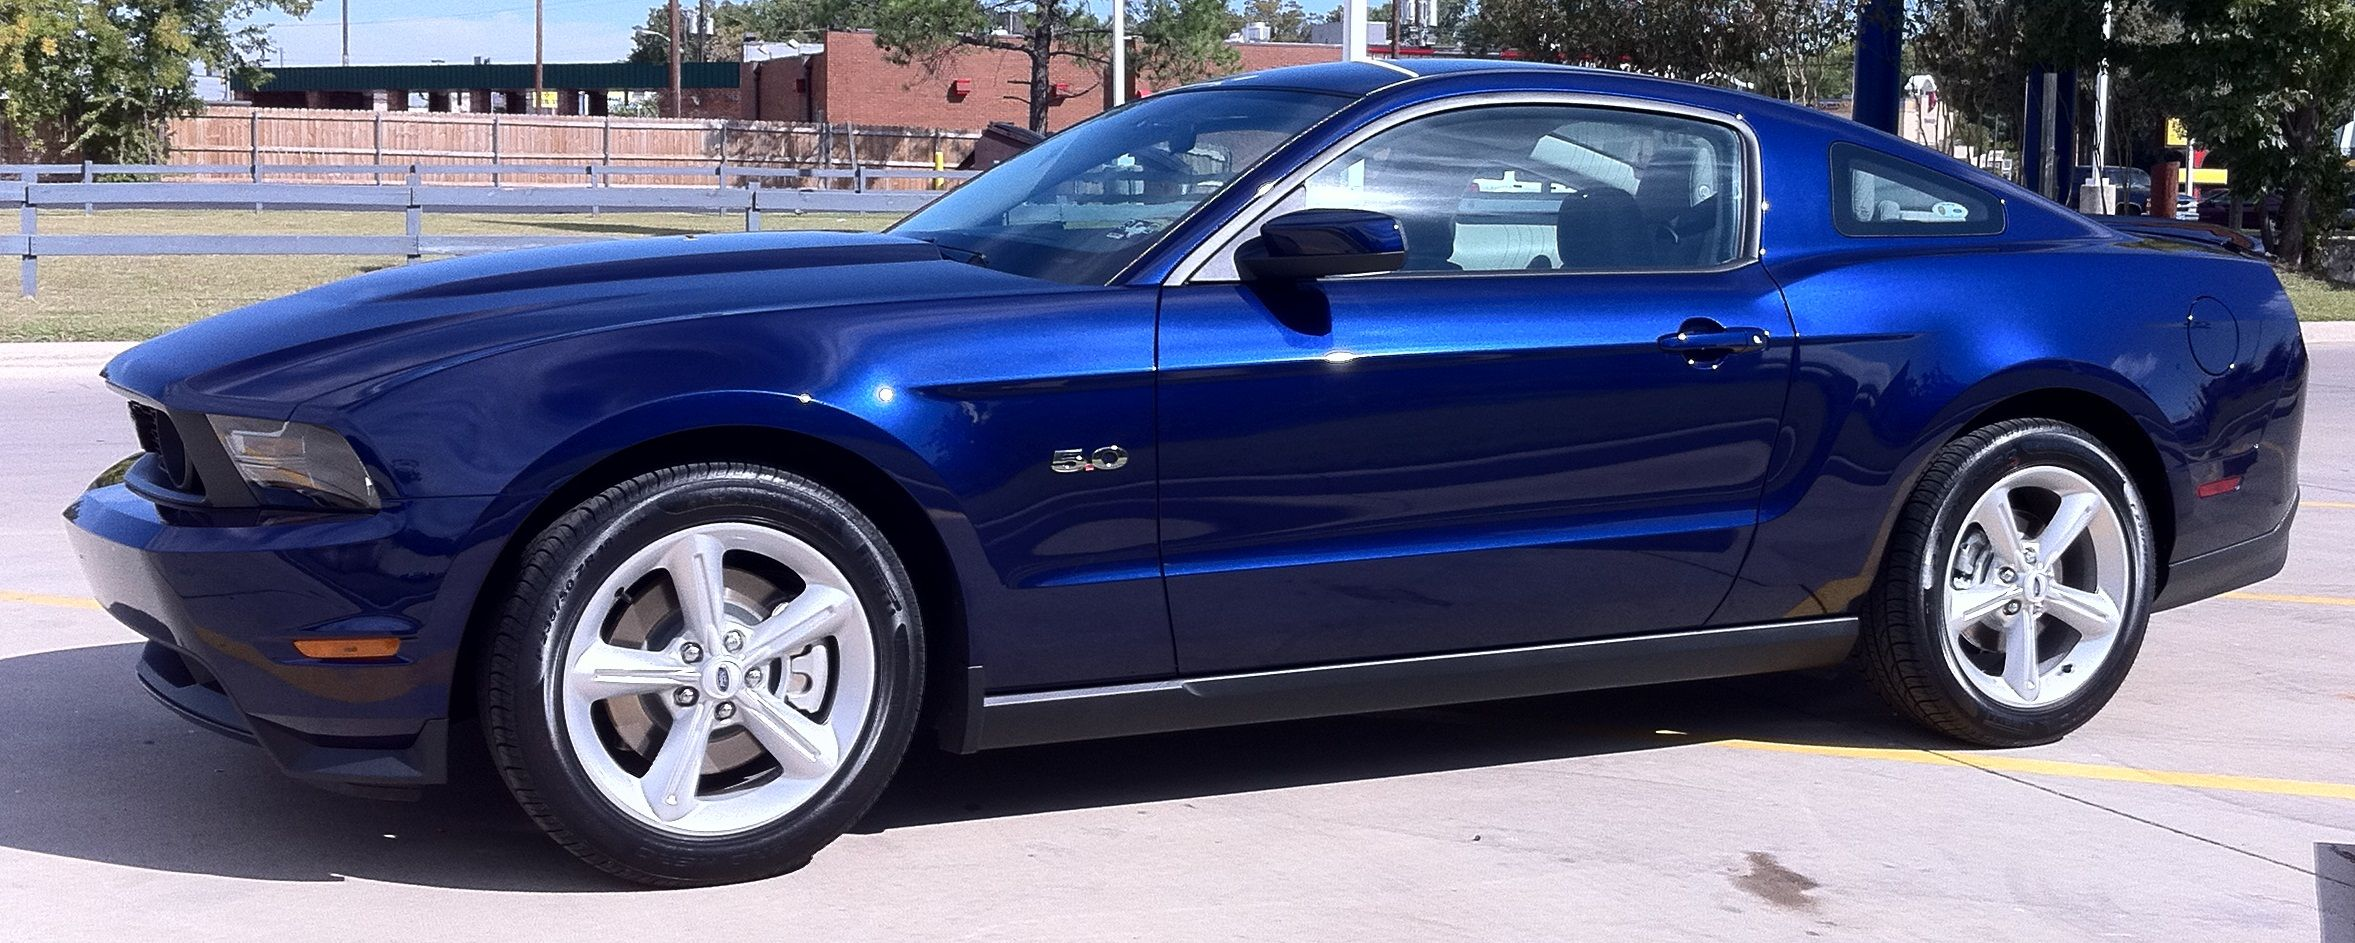 Ford mustang forum view single post 2011 2014 mustang v8